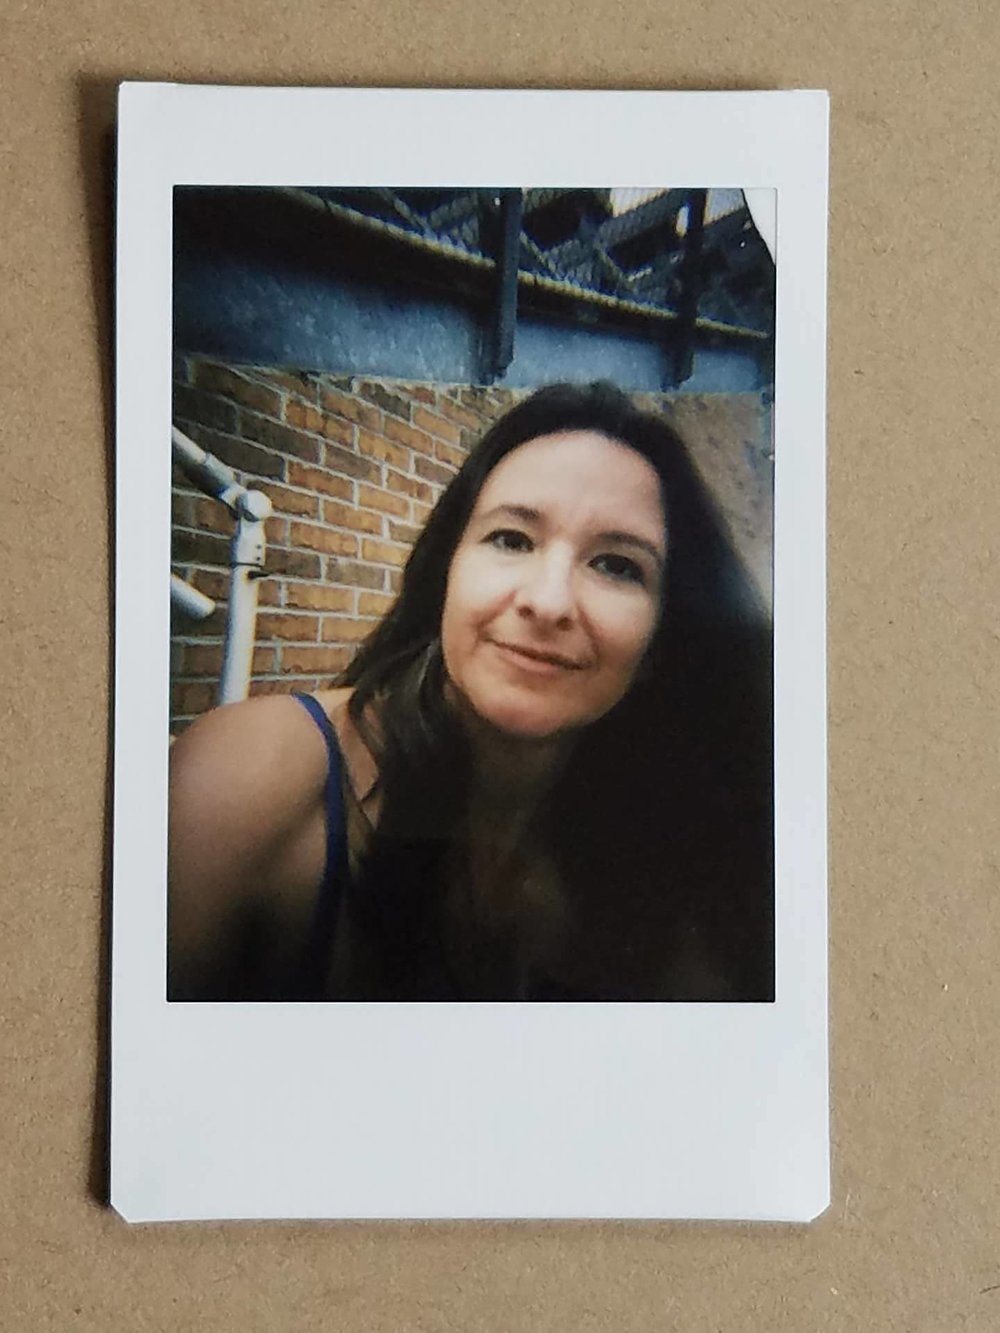 Quick selfie with the LomoInstant